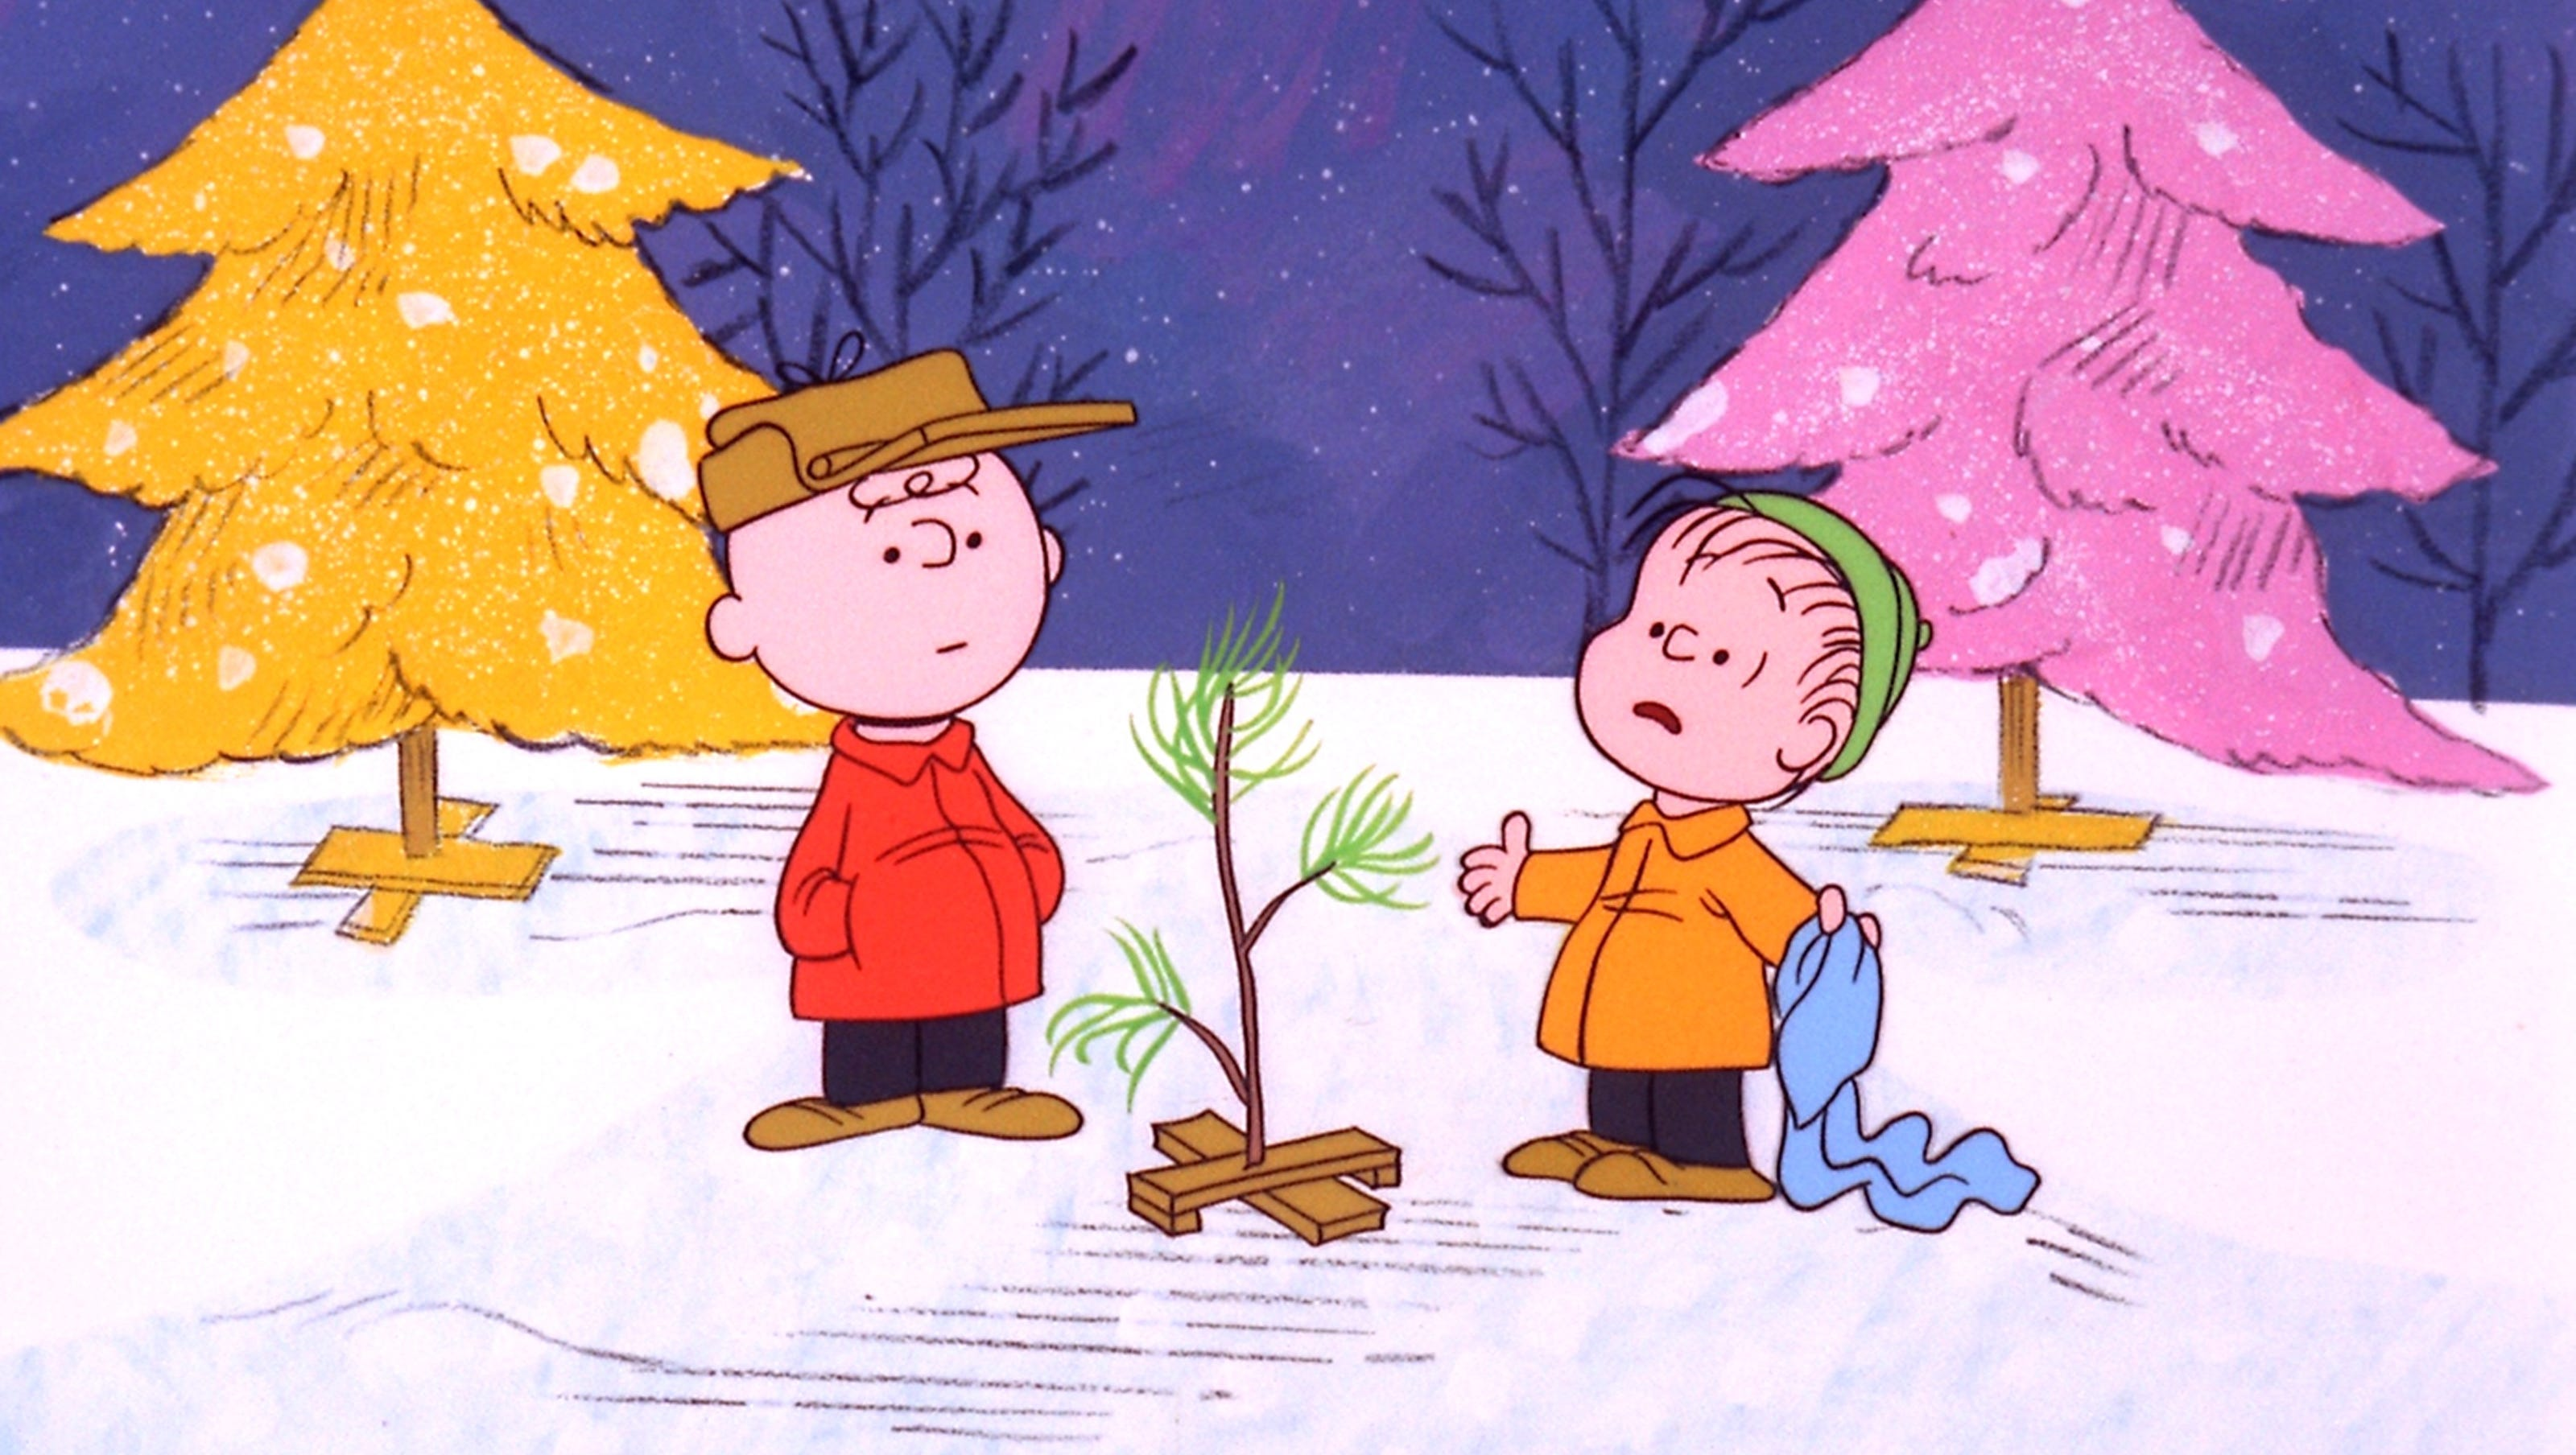 'A Charlie Brown Christmas' voted top Christmas movie